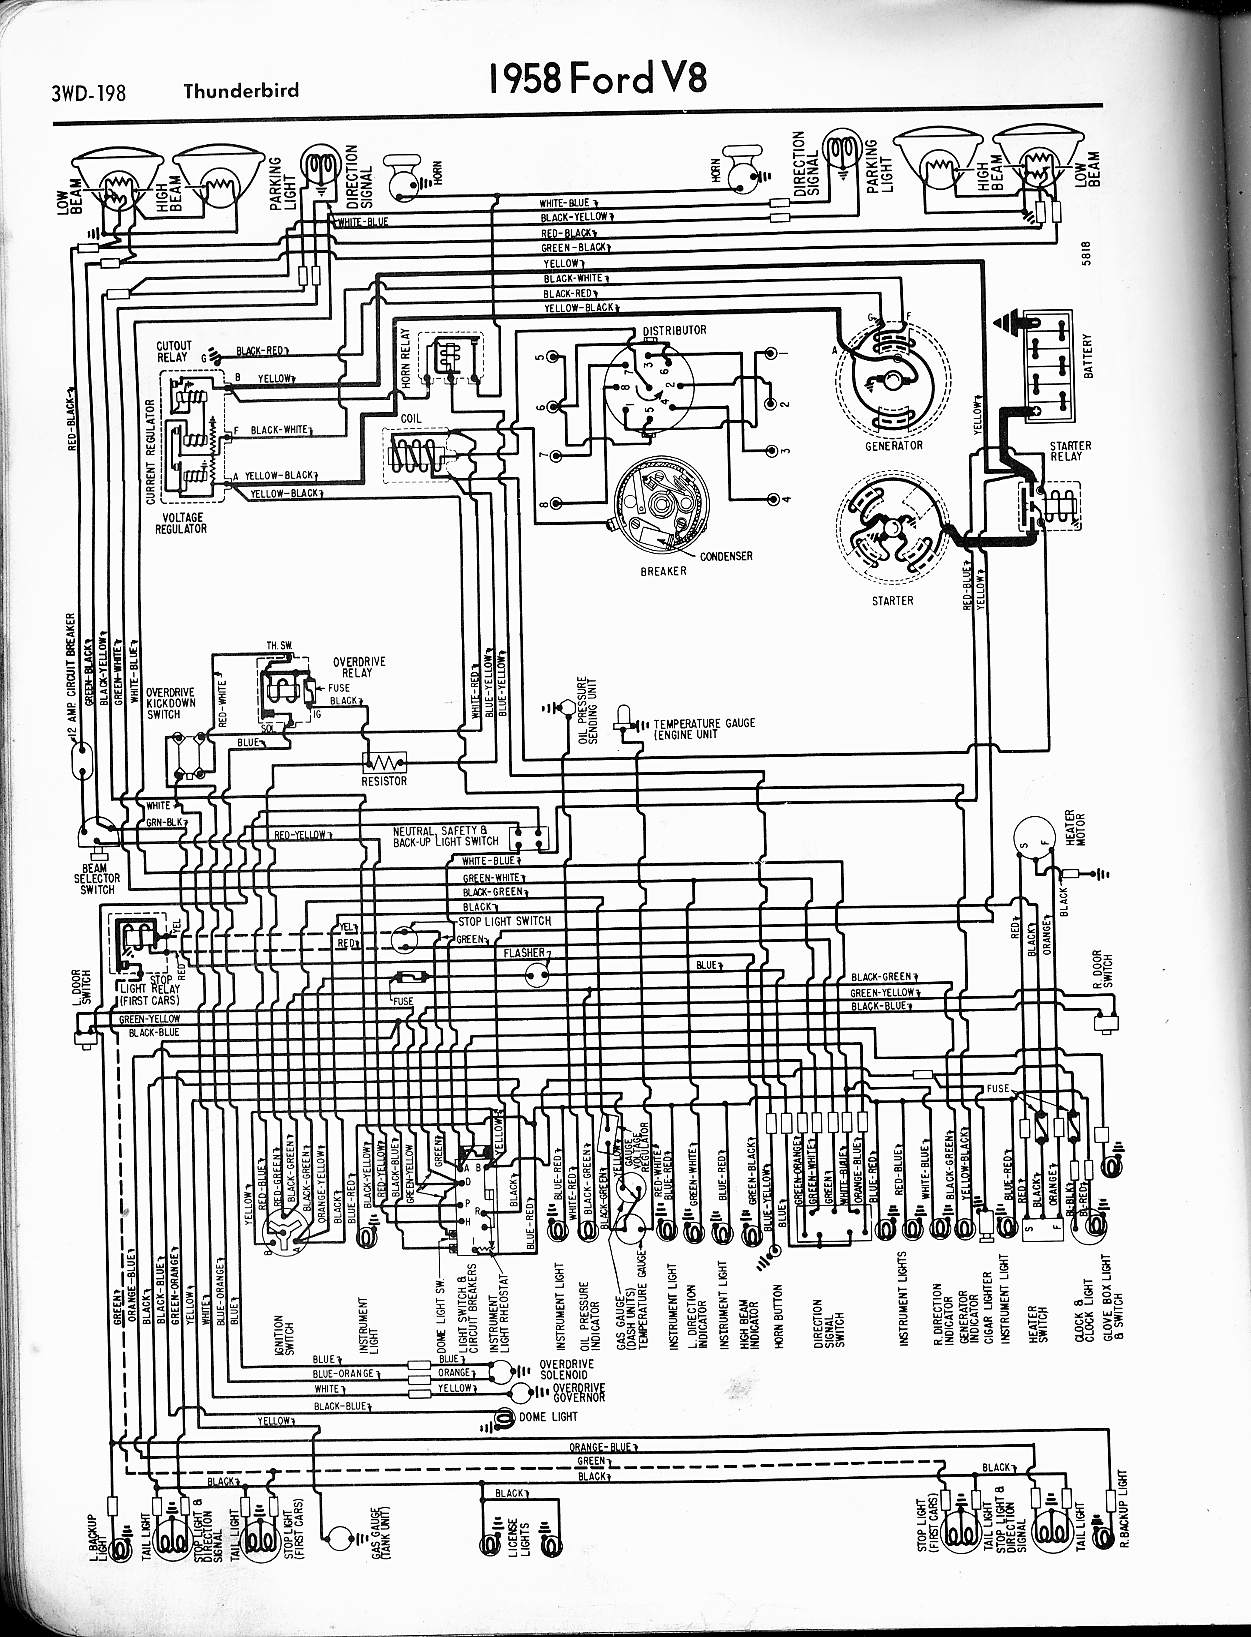 MWire5765 198 57 65 ford wiring diagrams 1955 thunderbird wiring diagram at gsmx.co